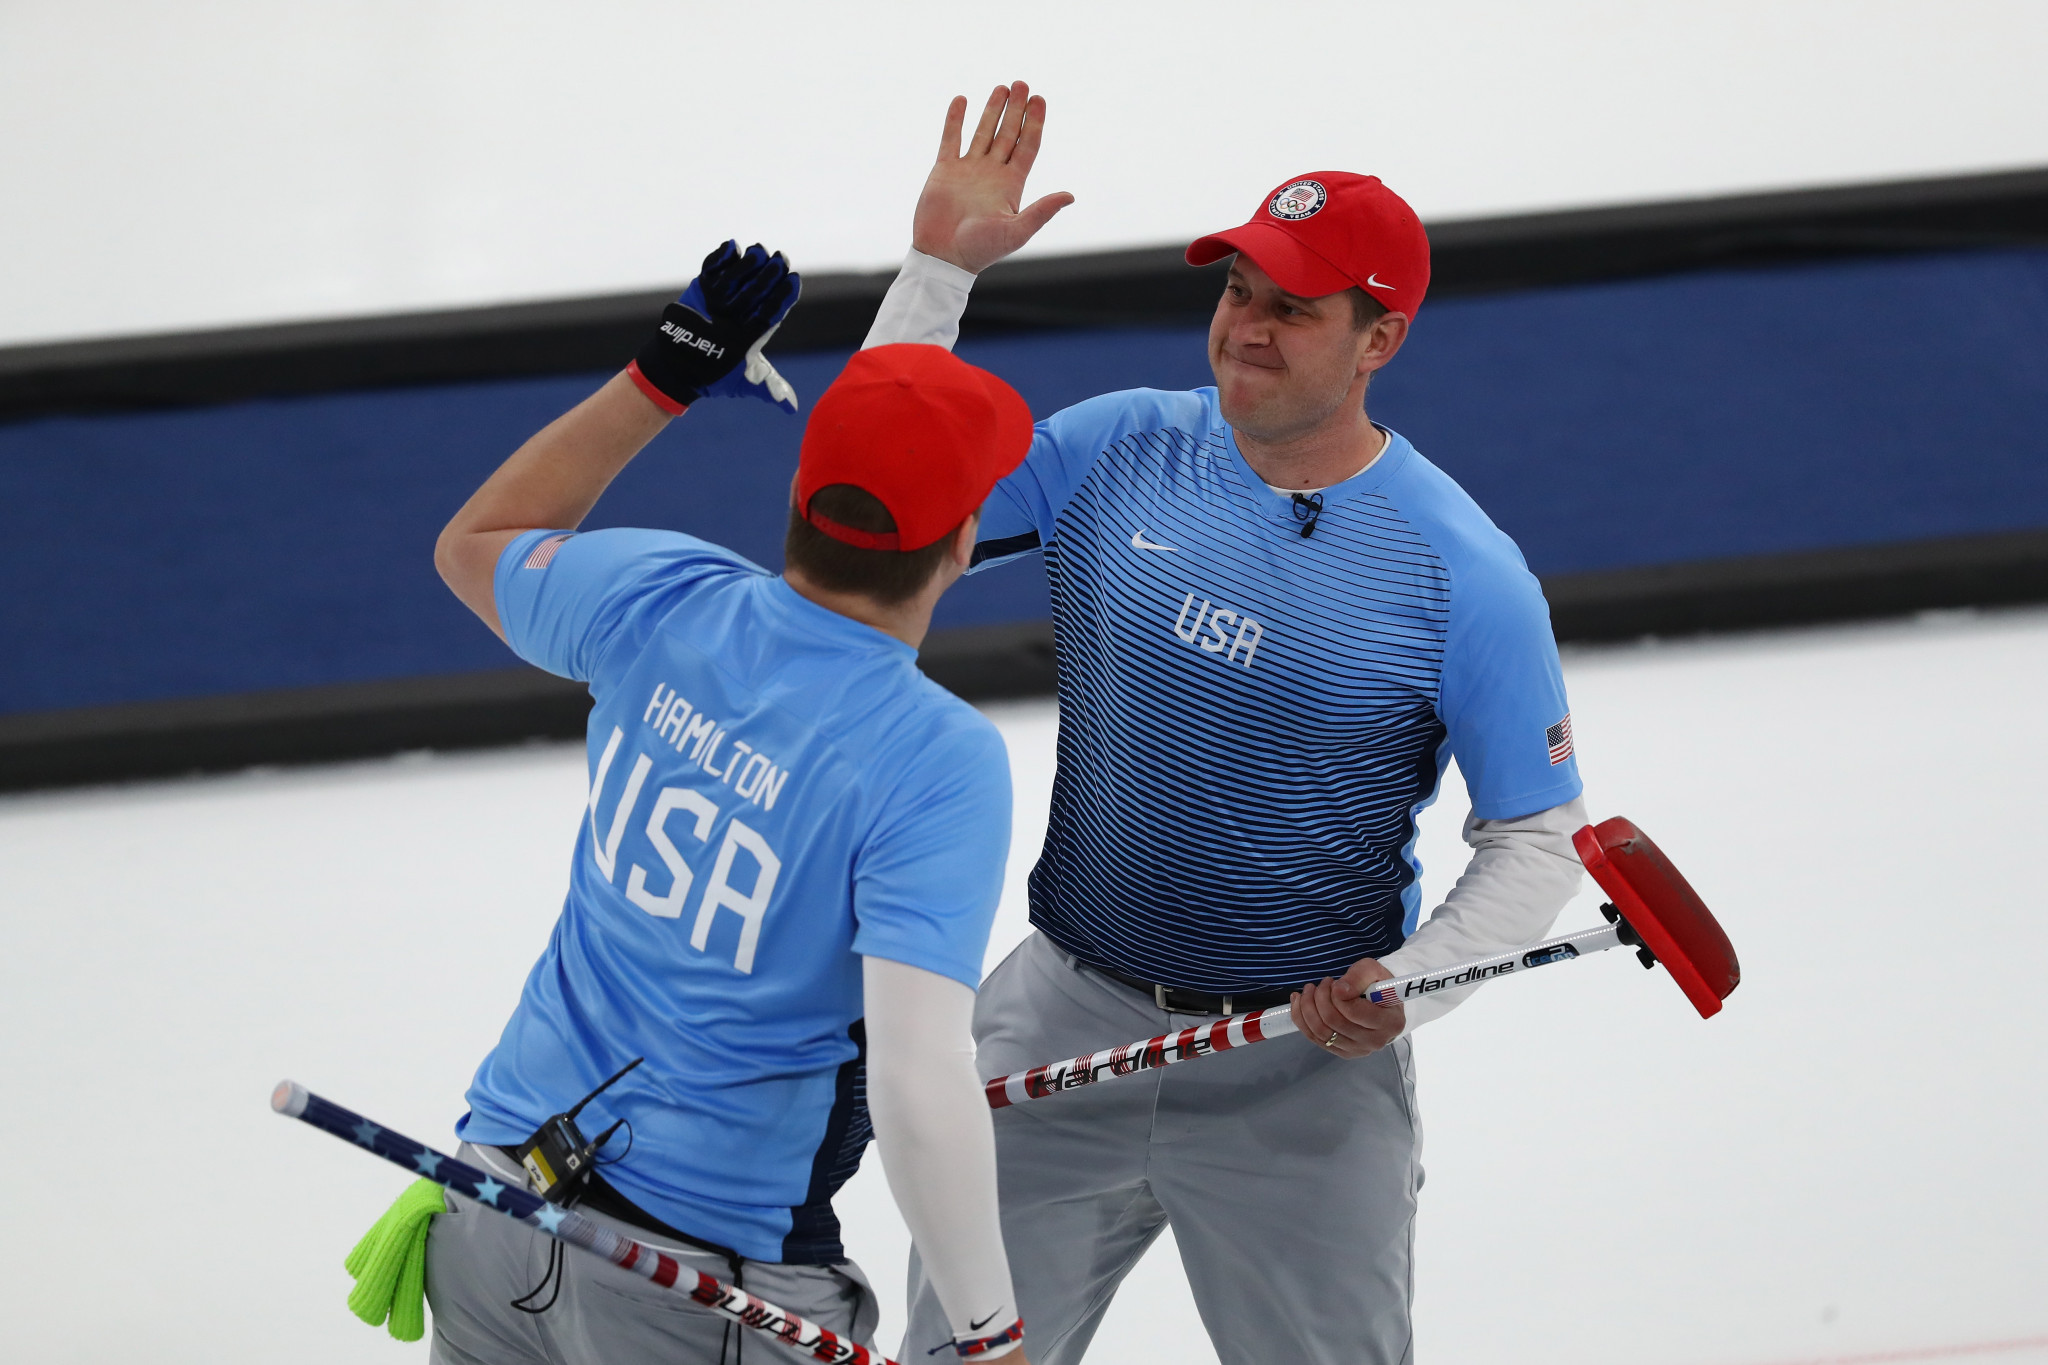 United States Olympic Mixed Doubles Curling Trials moved to Minnesota due to COVID-19